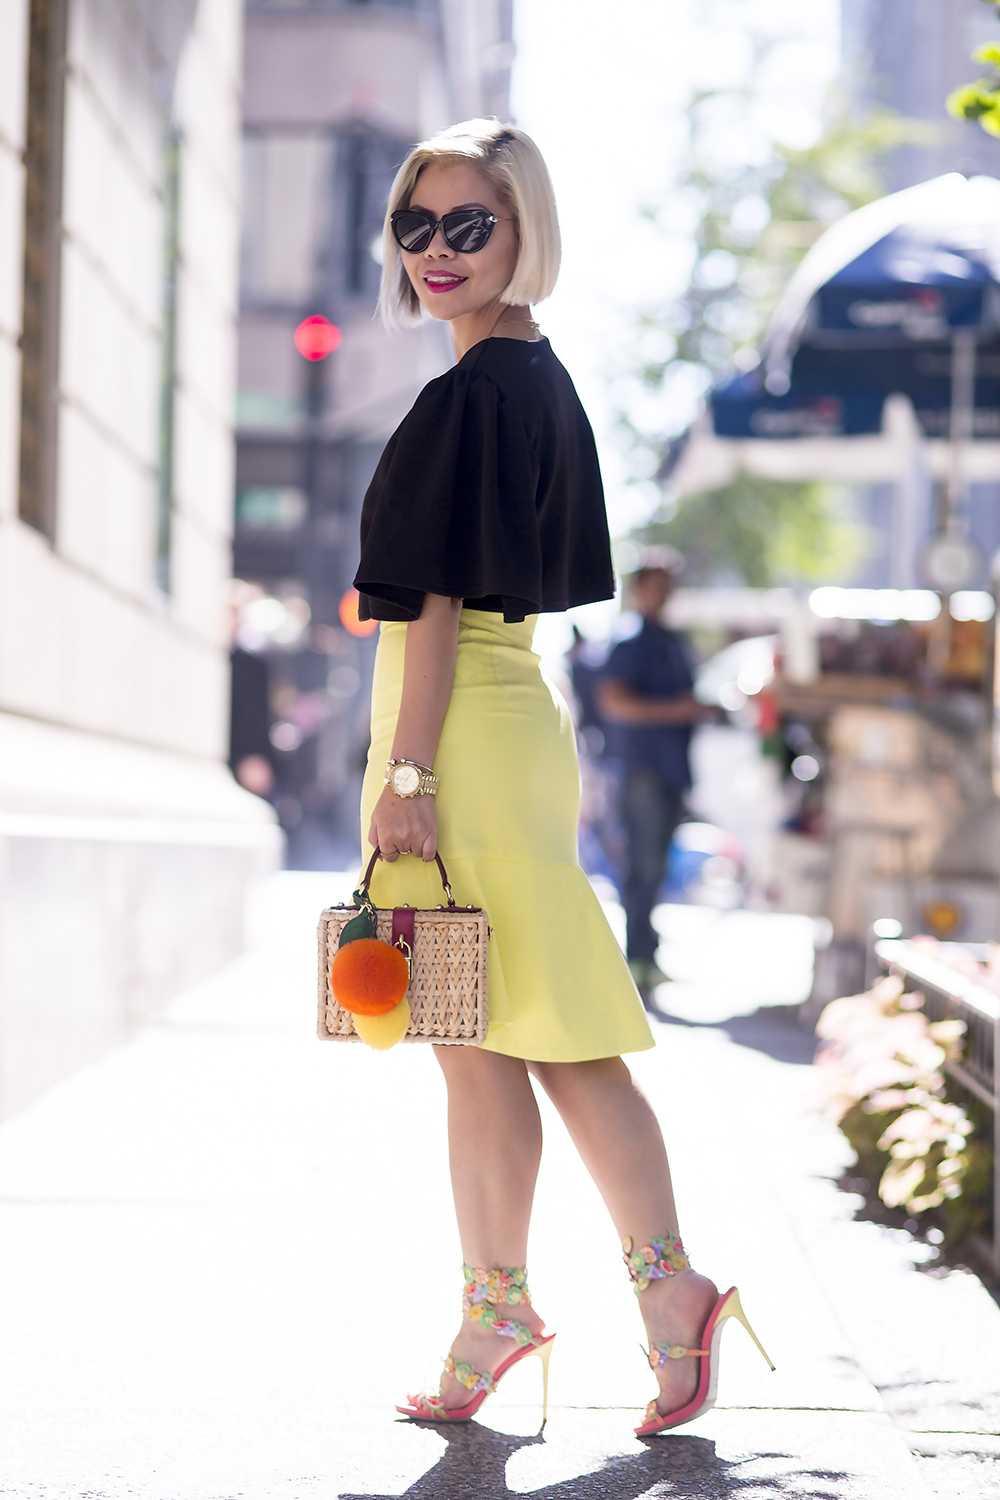 New York Fashion Week Streetstyle 2015- Crystal Phuong